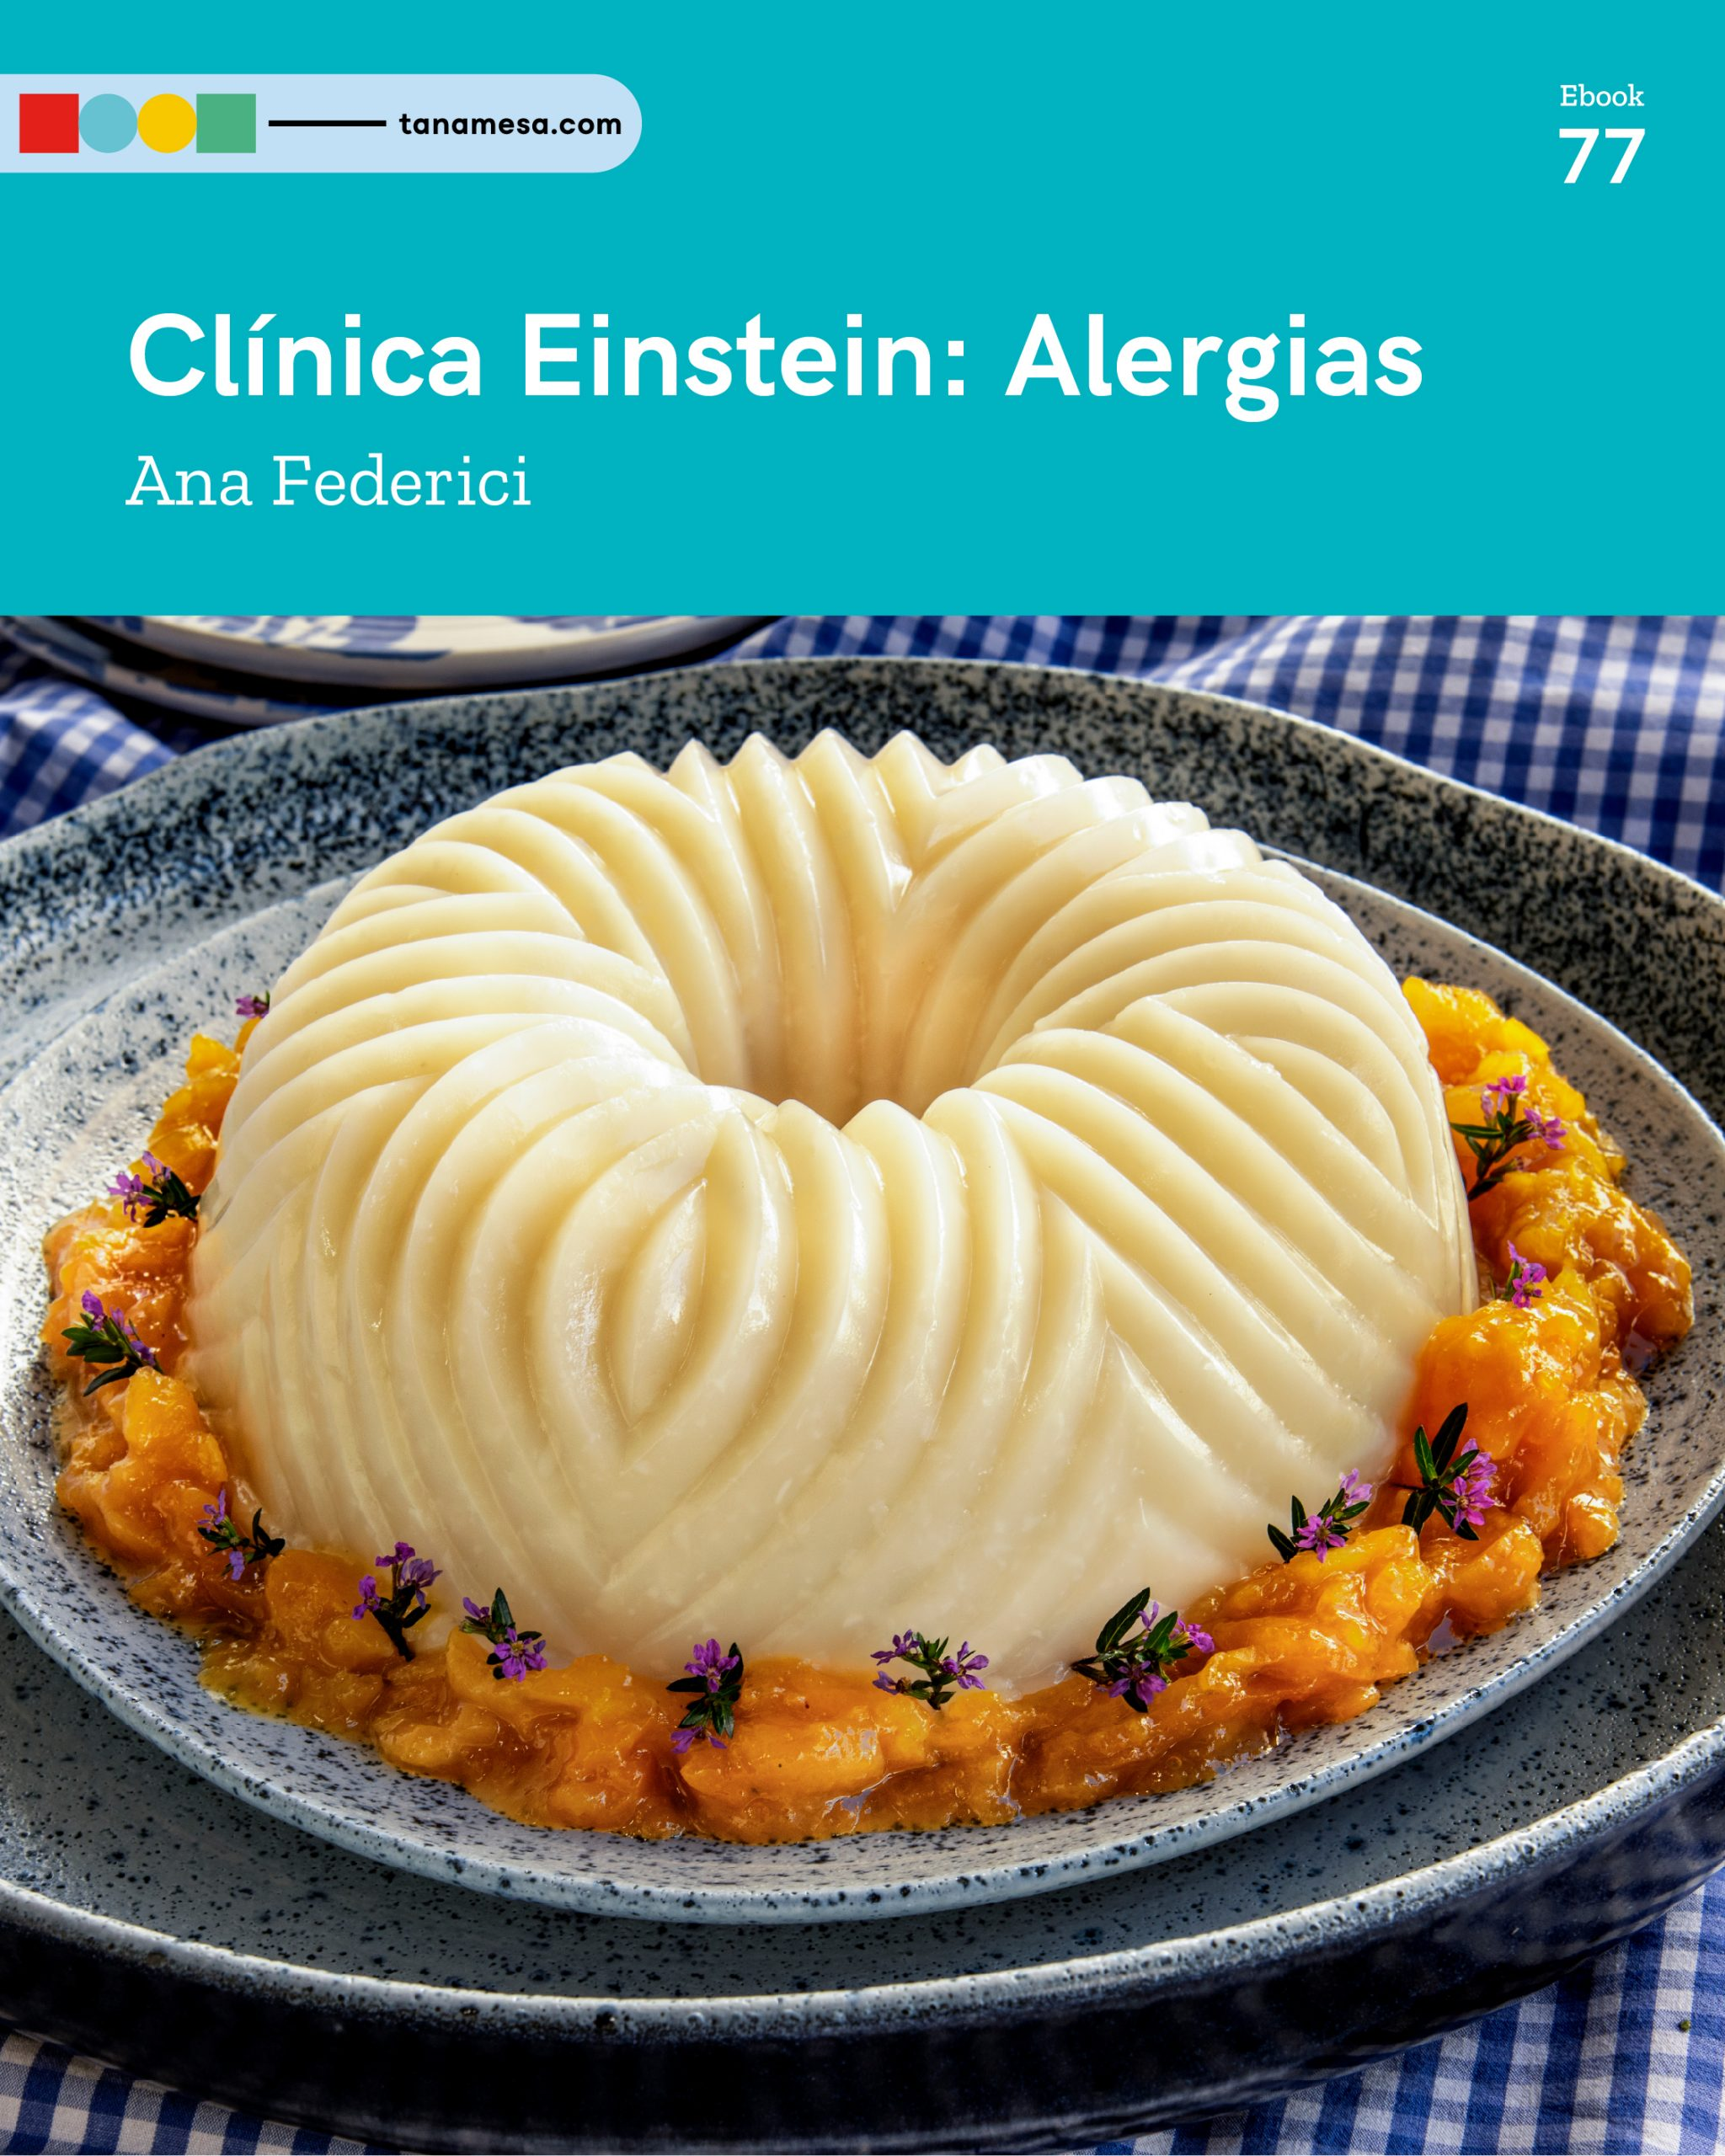 Clínica Einstein: Alergias